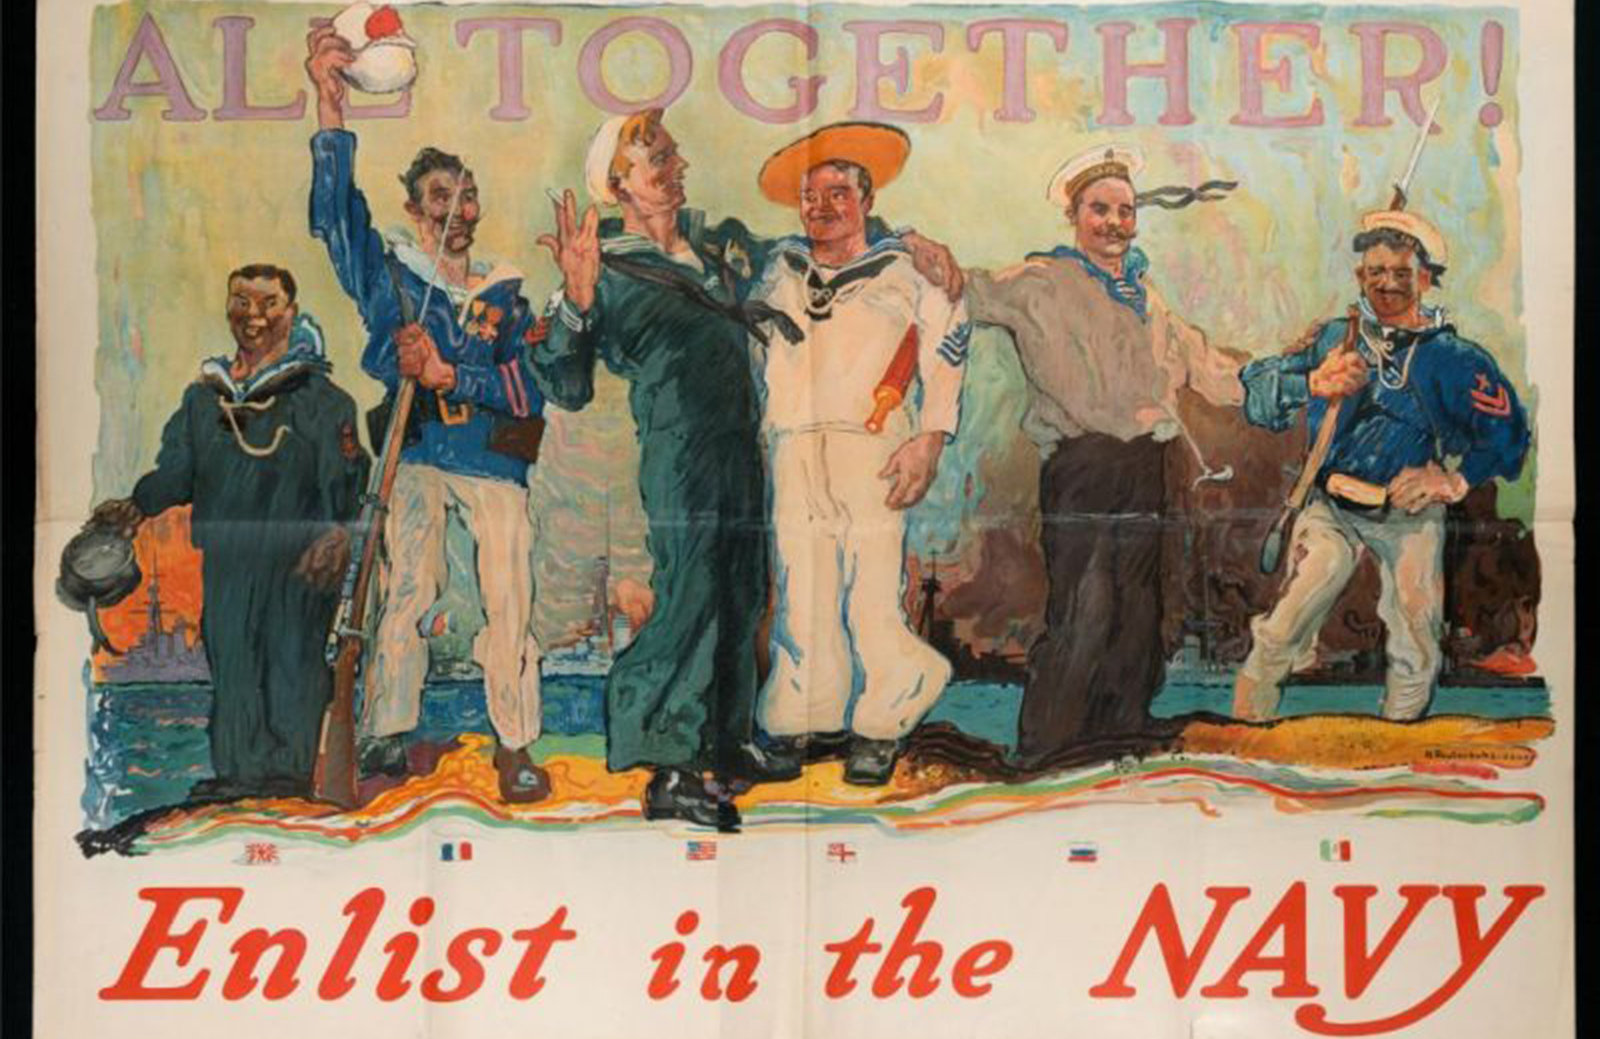 Promotional poster for the navies of the allies, Reuterdahl, Henry, Biblioteca Universitaria Alessandrina, In Copyright